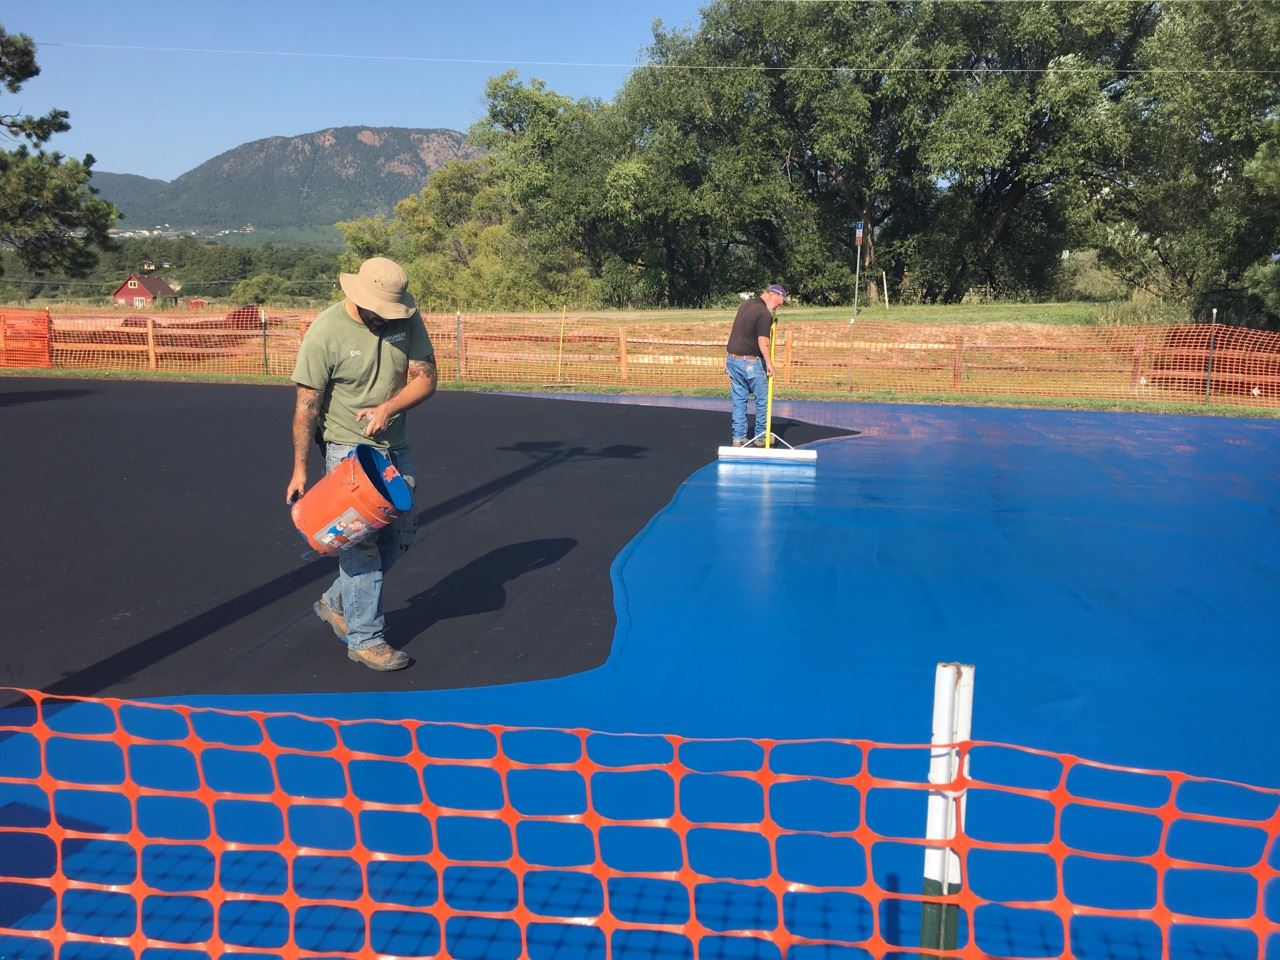 Resurfacing Basket Ball Court 8-30-17_1